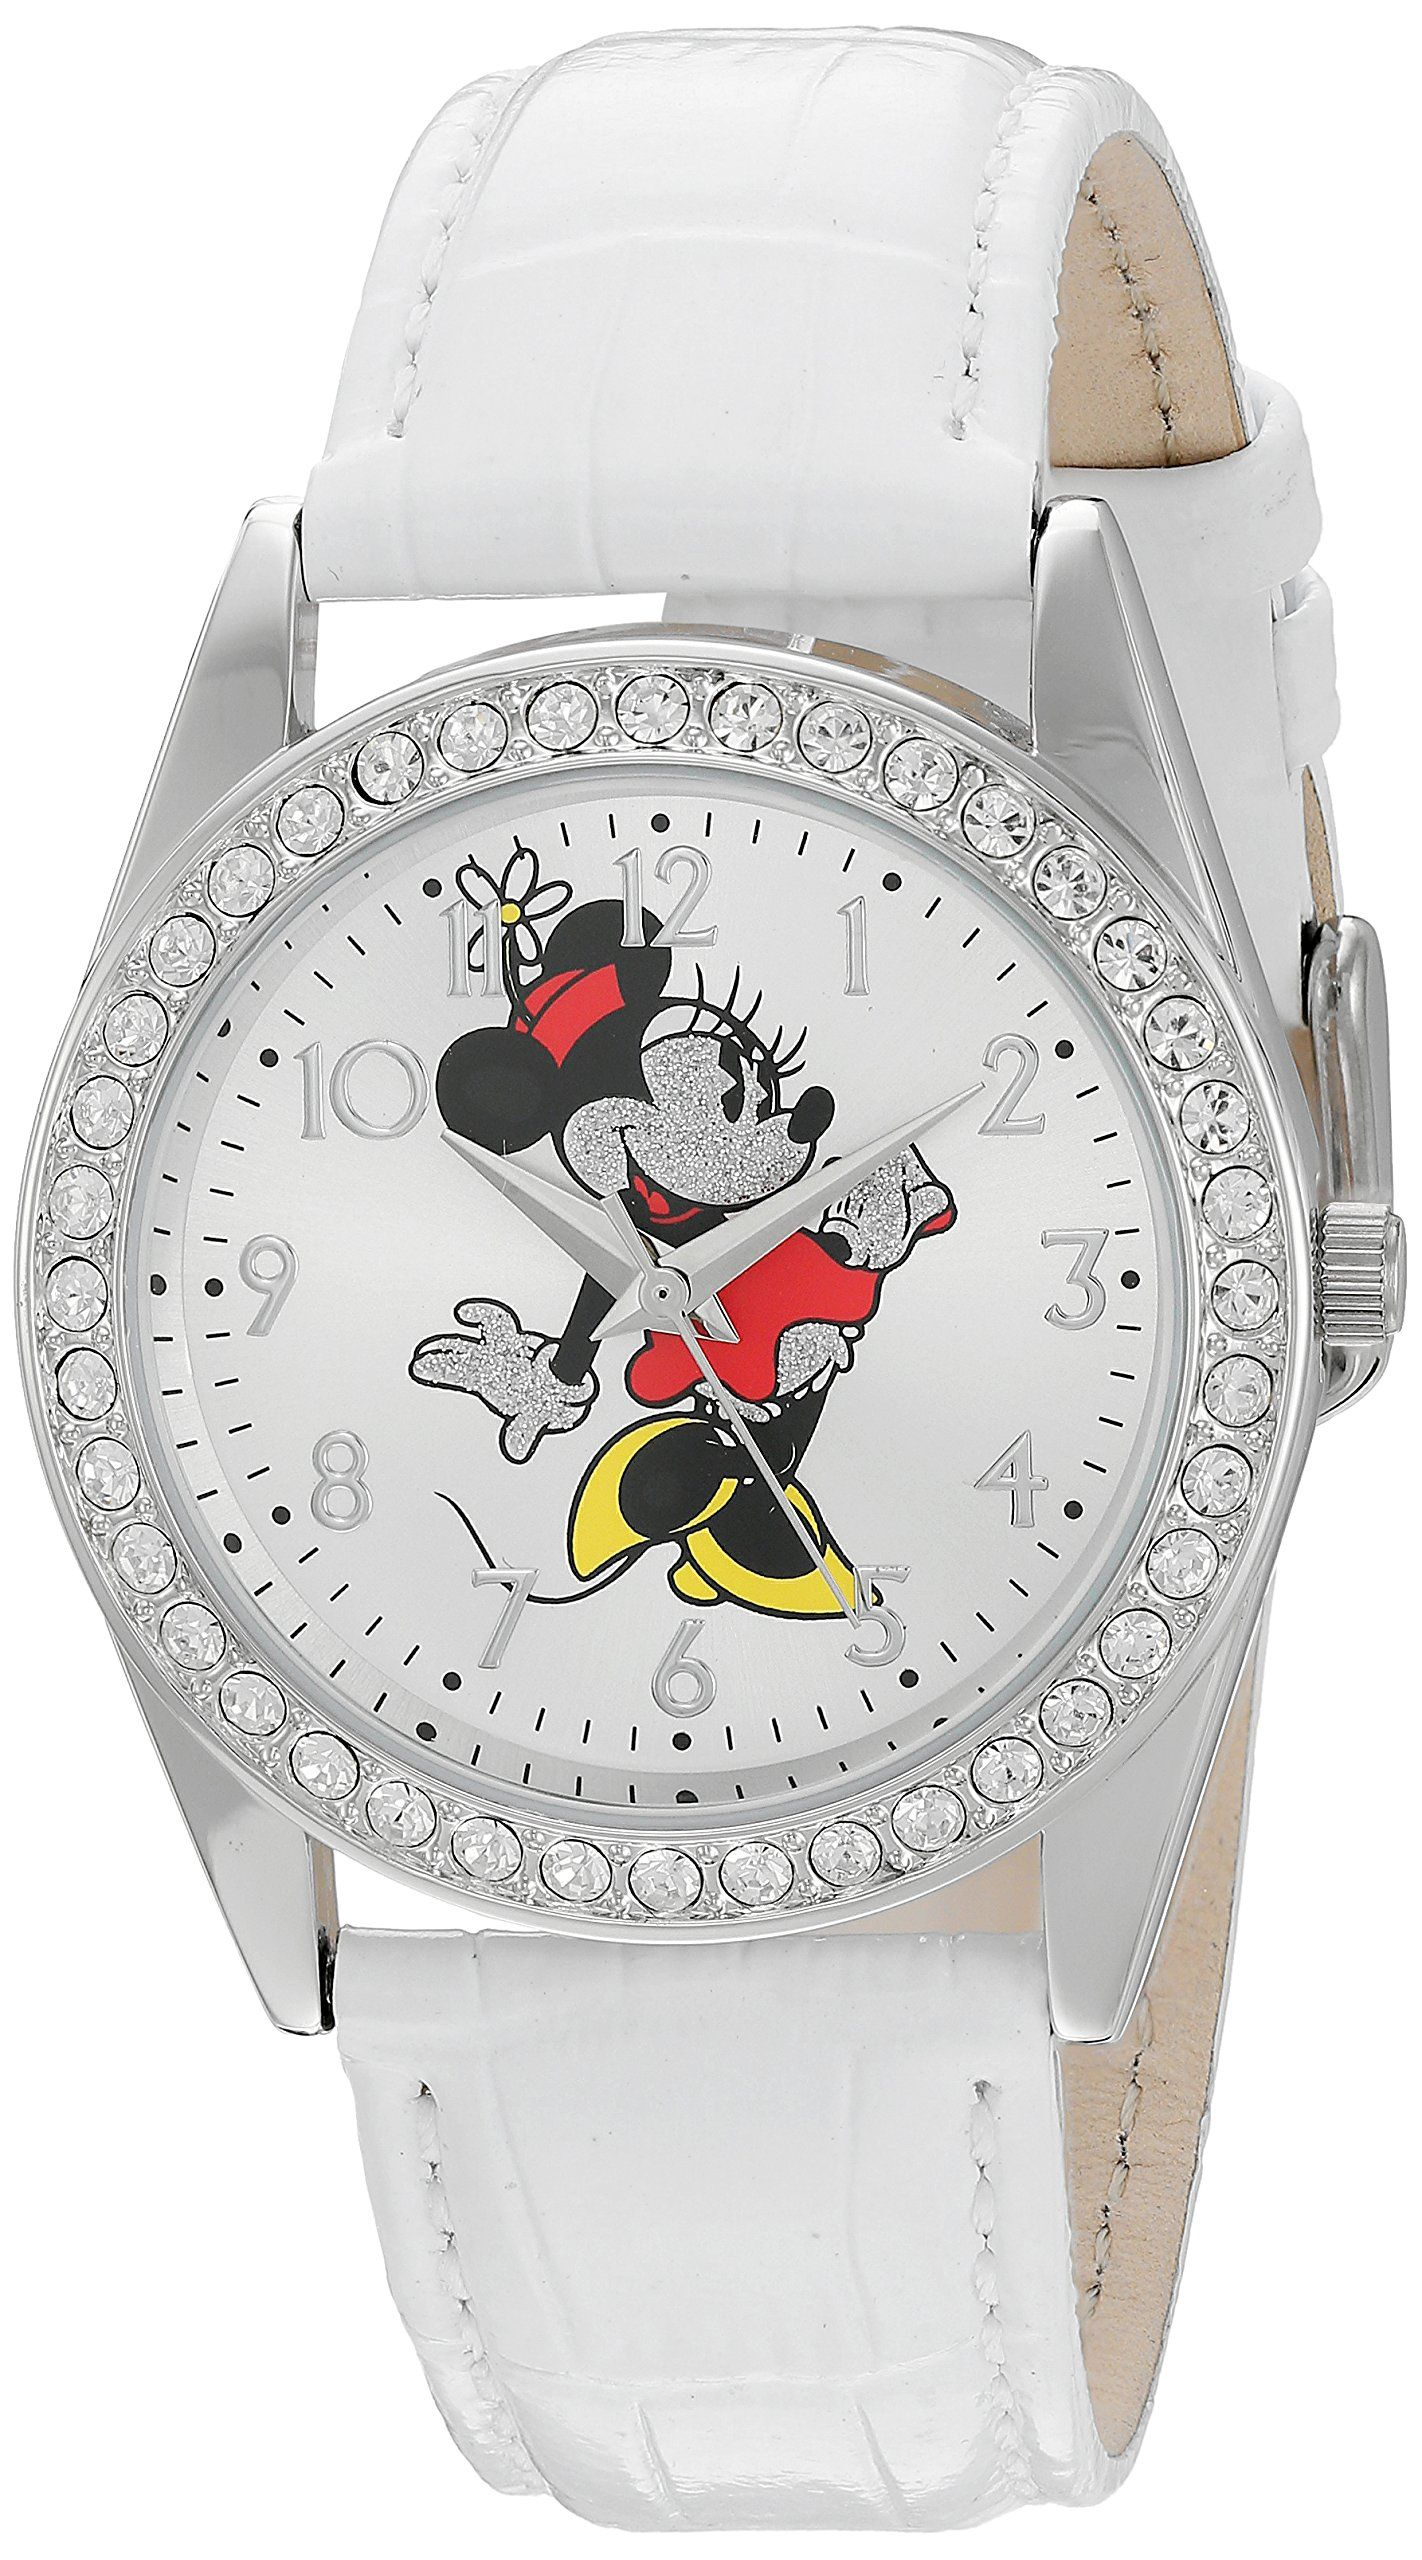 50d8d87b9 Disney Minnie Mouse Womens Silver Alloy Glitz Watch White Leather Strap  W002764 >>> Check this awesome product by going to the link at the image.